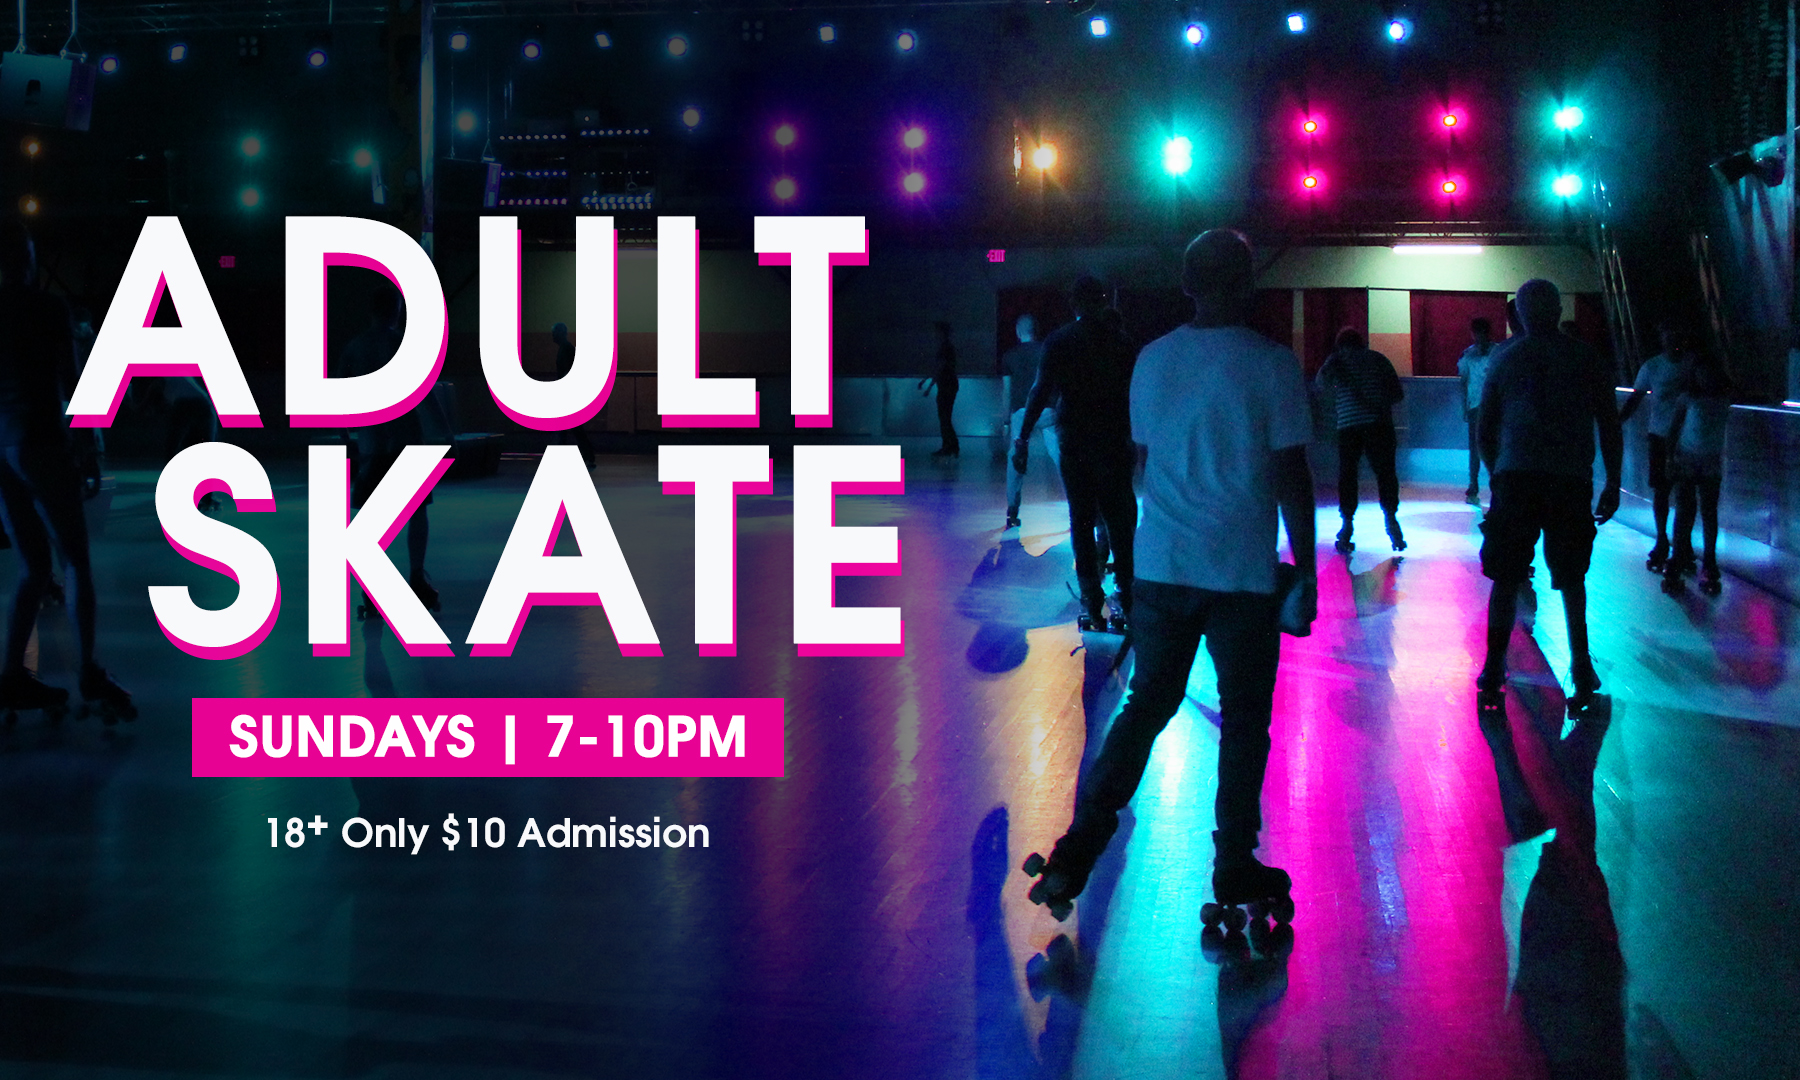 Adult Skate Night Special Offer